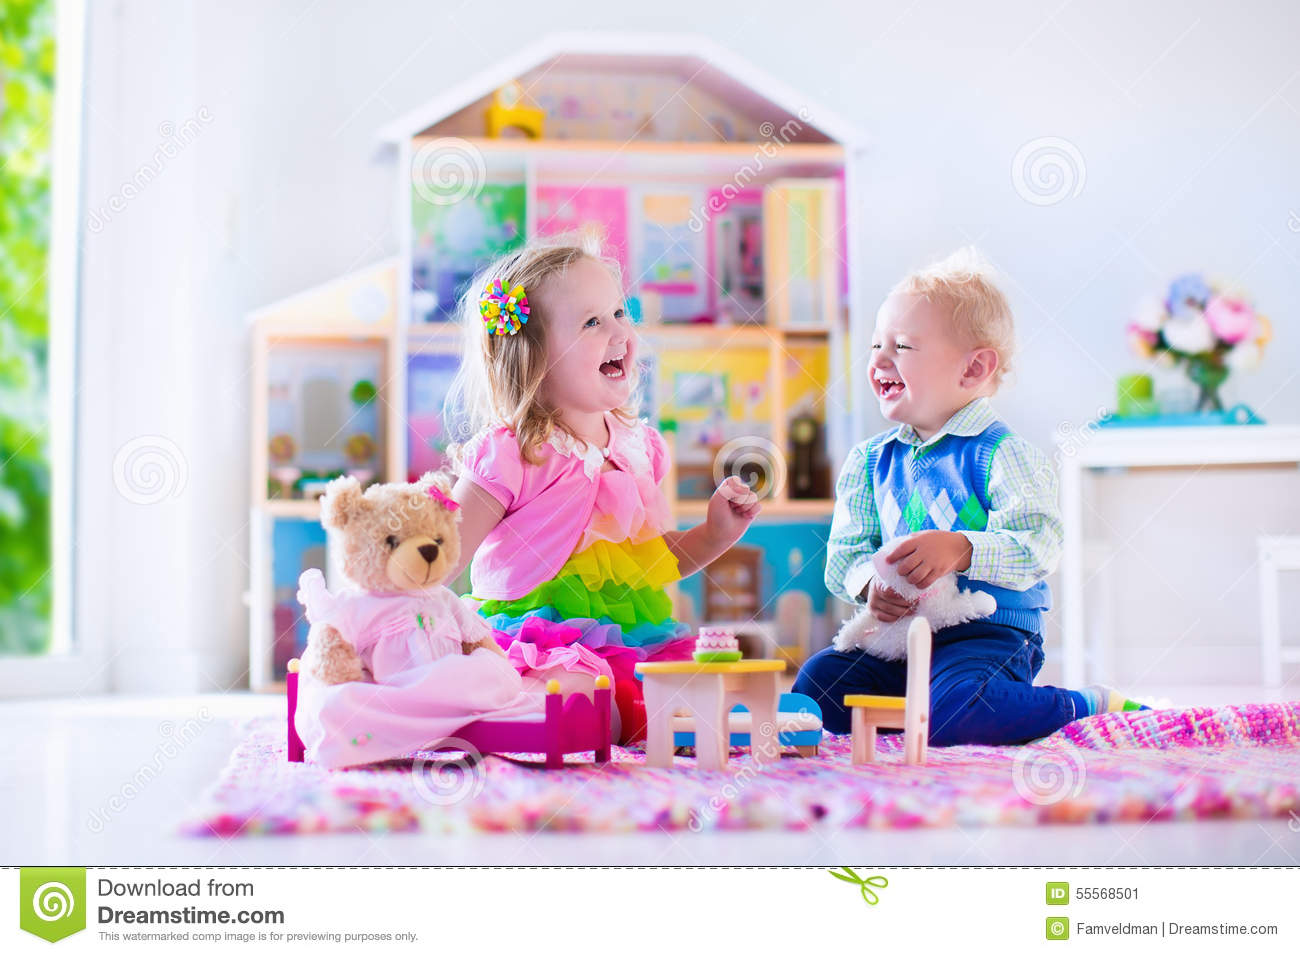 Kinder Garden: Kids Playing With Stuffed Animals And Doll House Stock